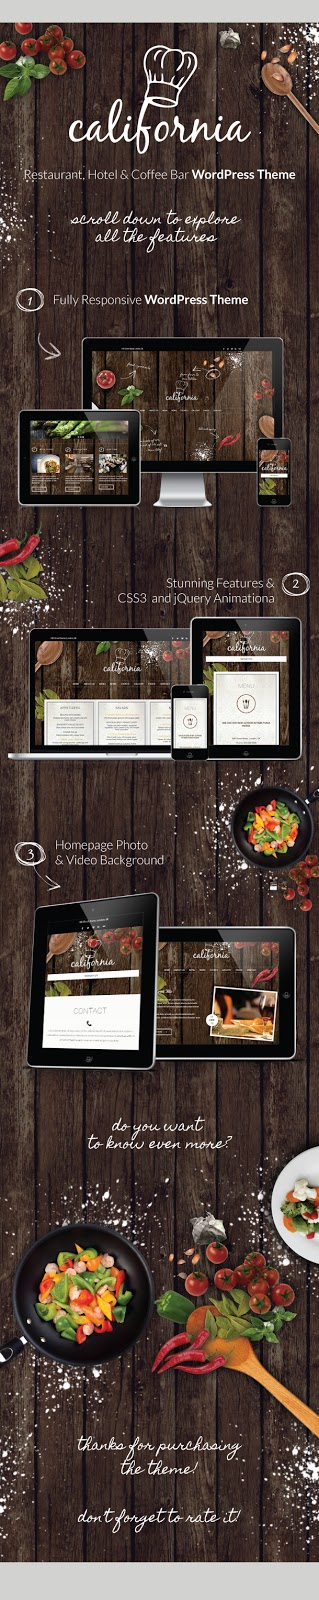 California-Restaurant-Hotel-Shop-Responsive-WordPress-Theme